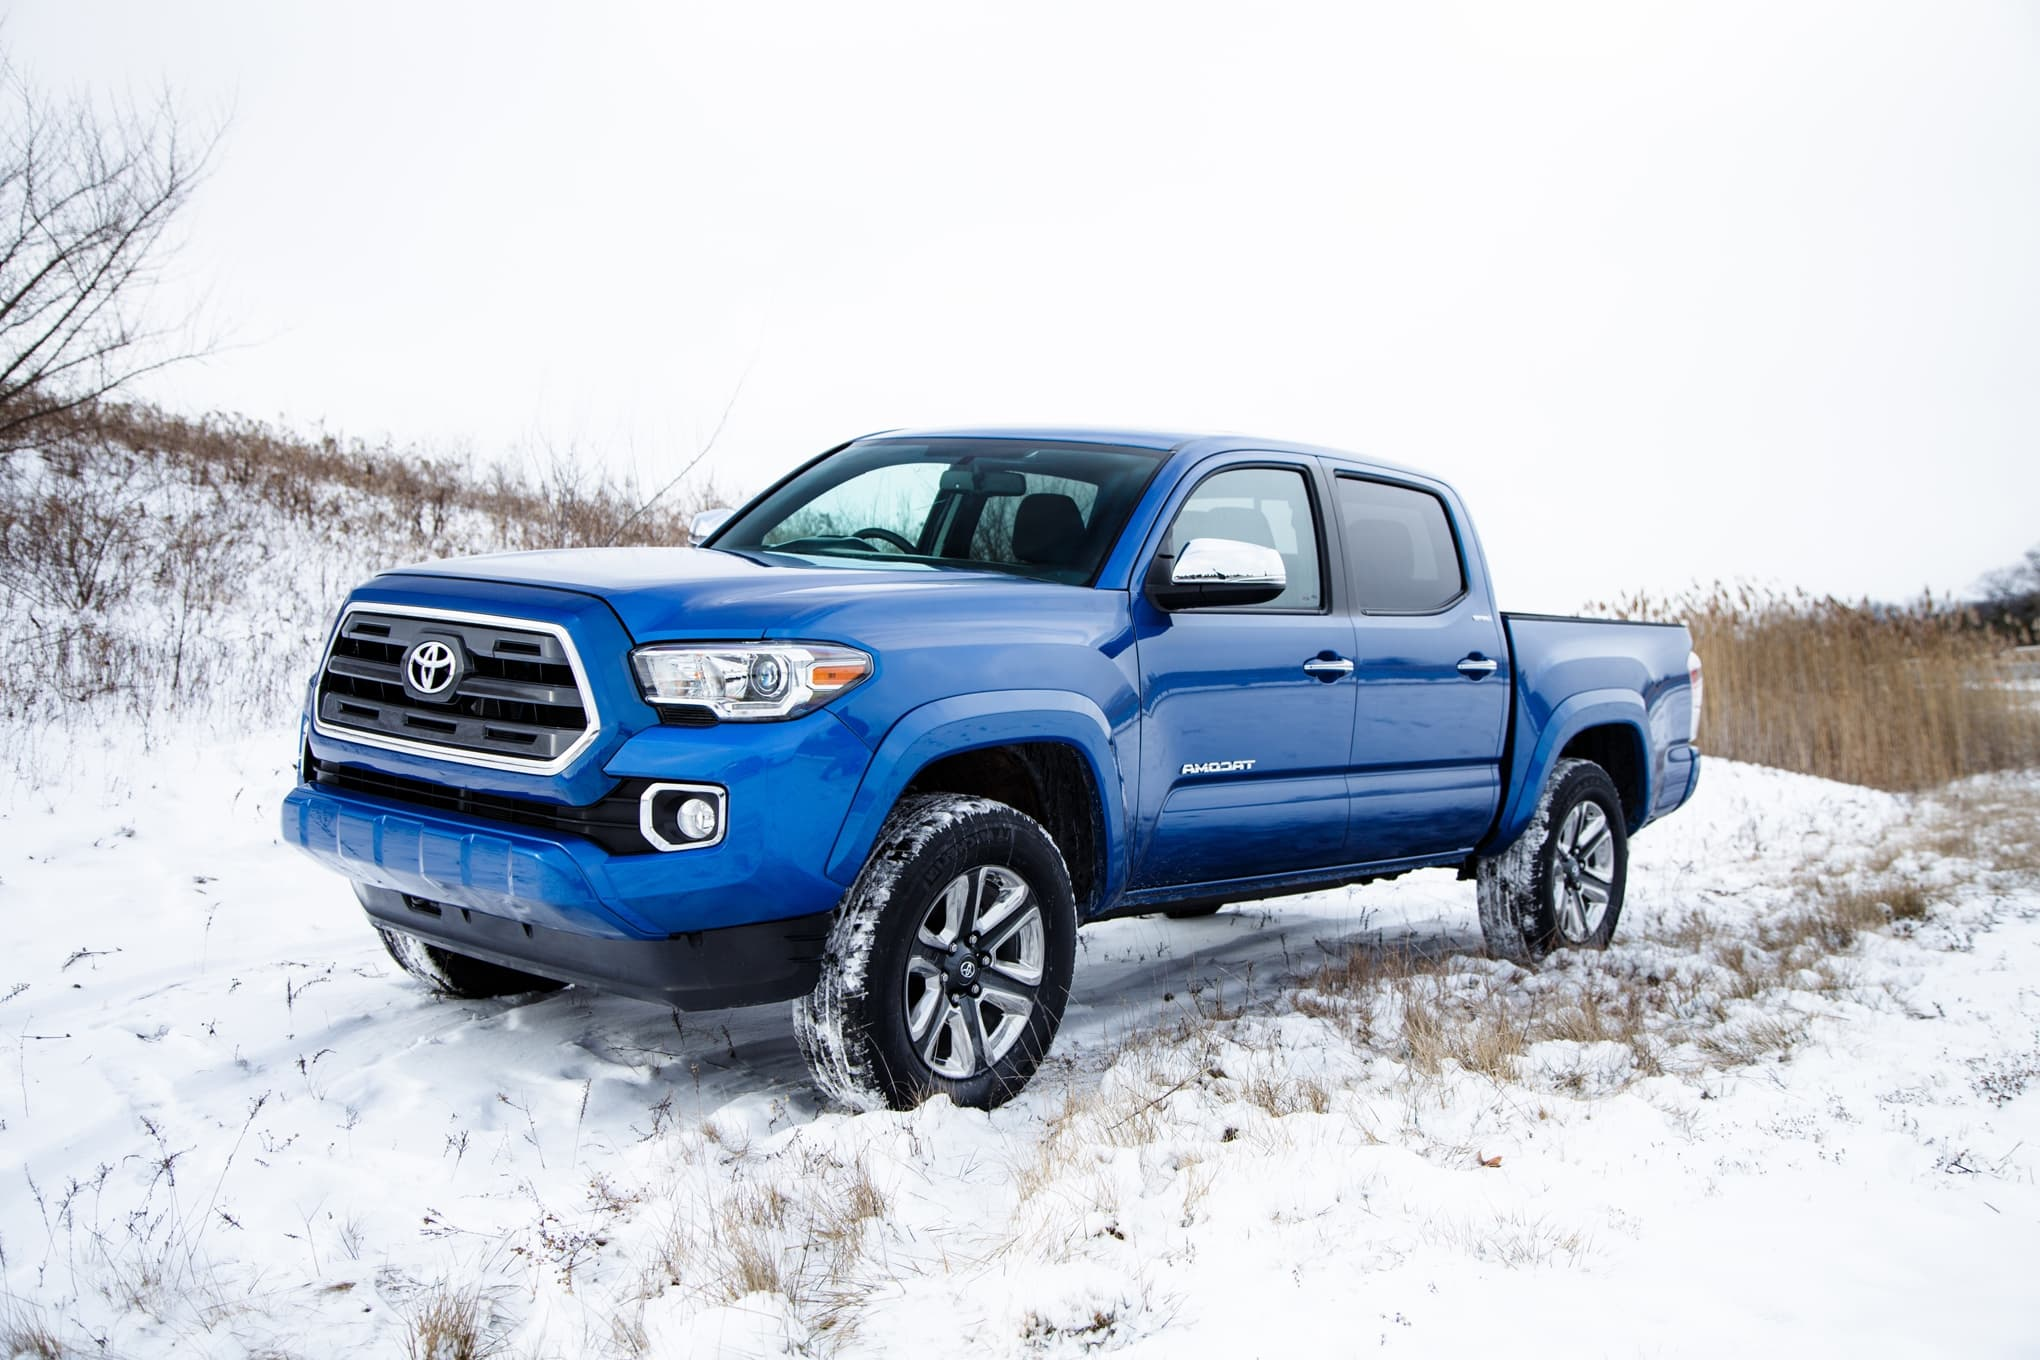 17 toyota tacoma 2016 wallpapers hd high resolution download. Black Bedroom Furniture Sets. Home Design Ideas